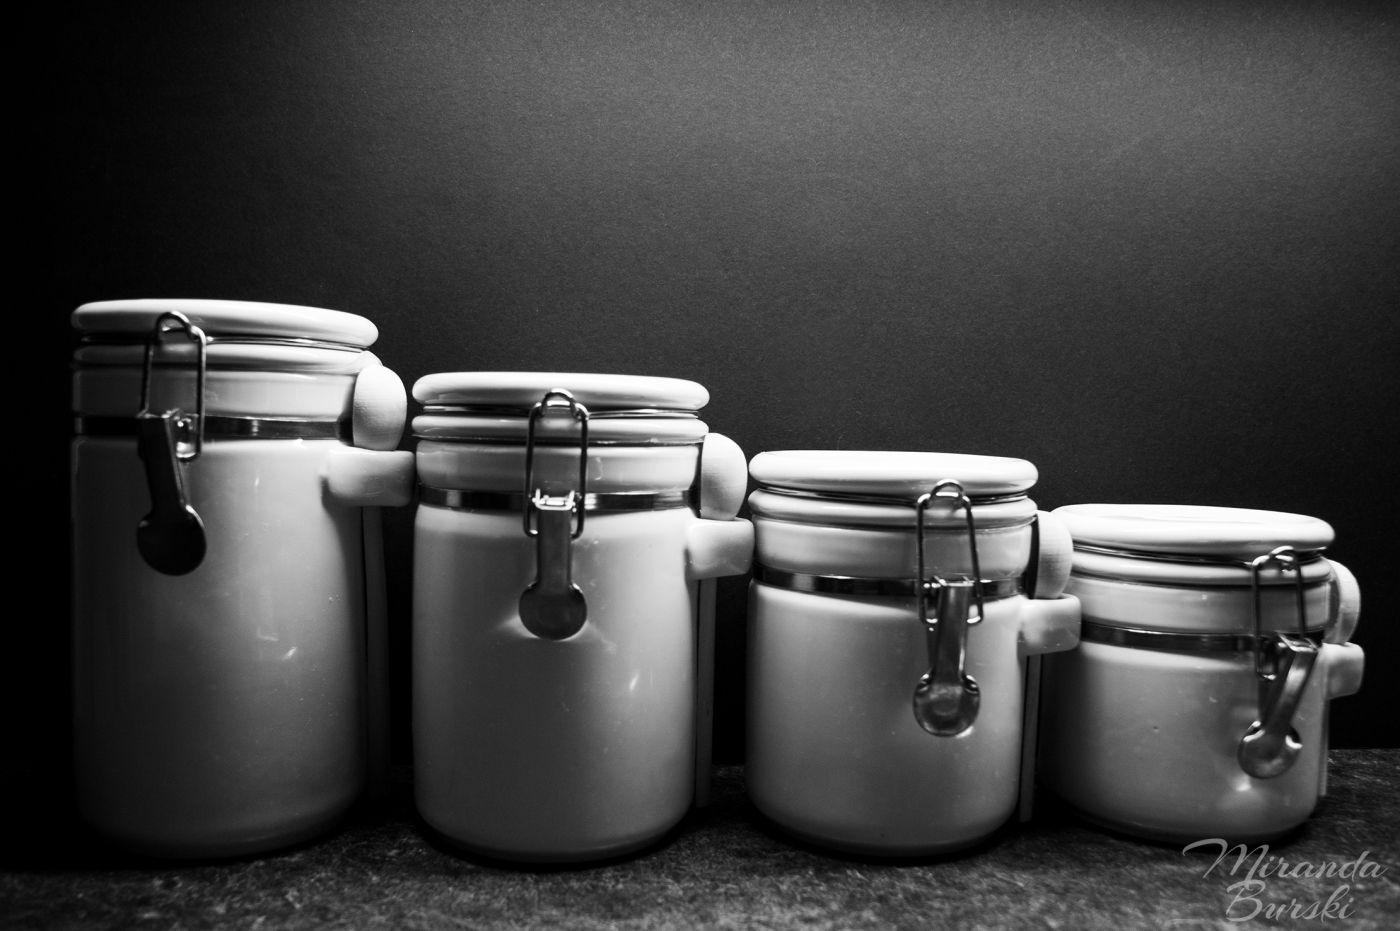 A black and white photo of four white canisters.